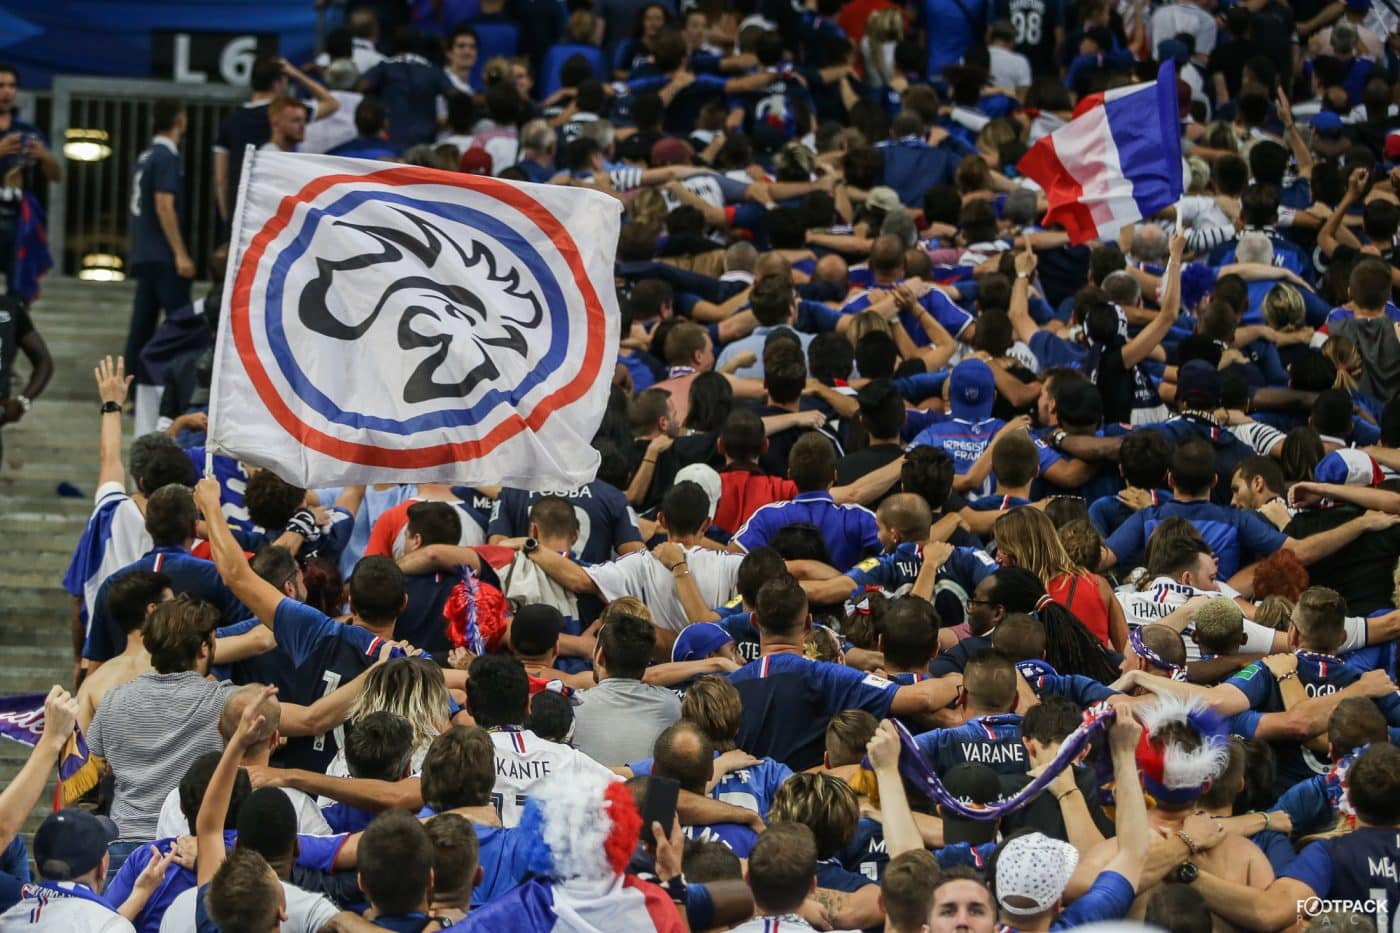 au-stade-france-pays-bas-supporters-2